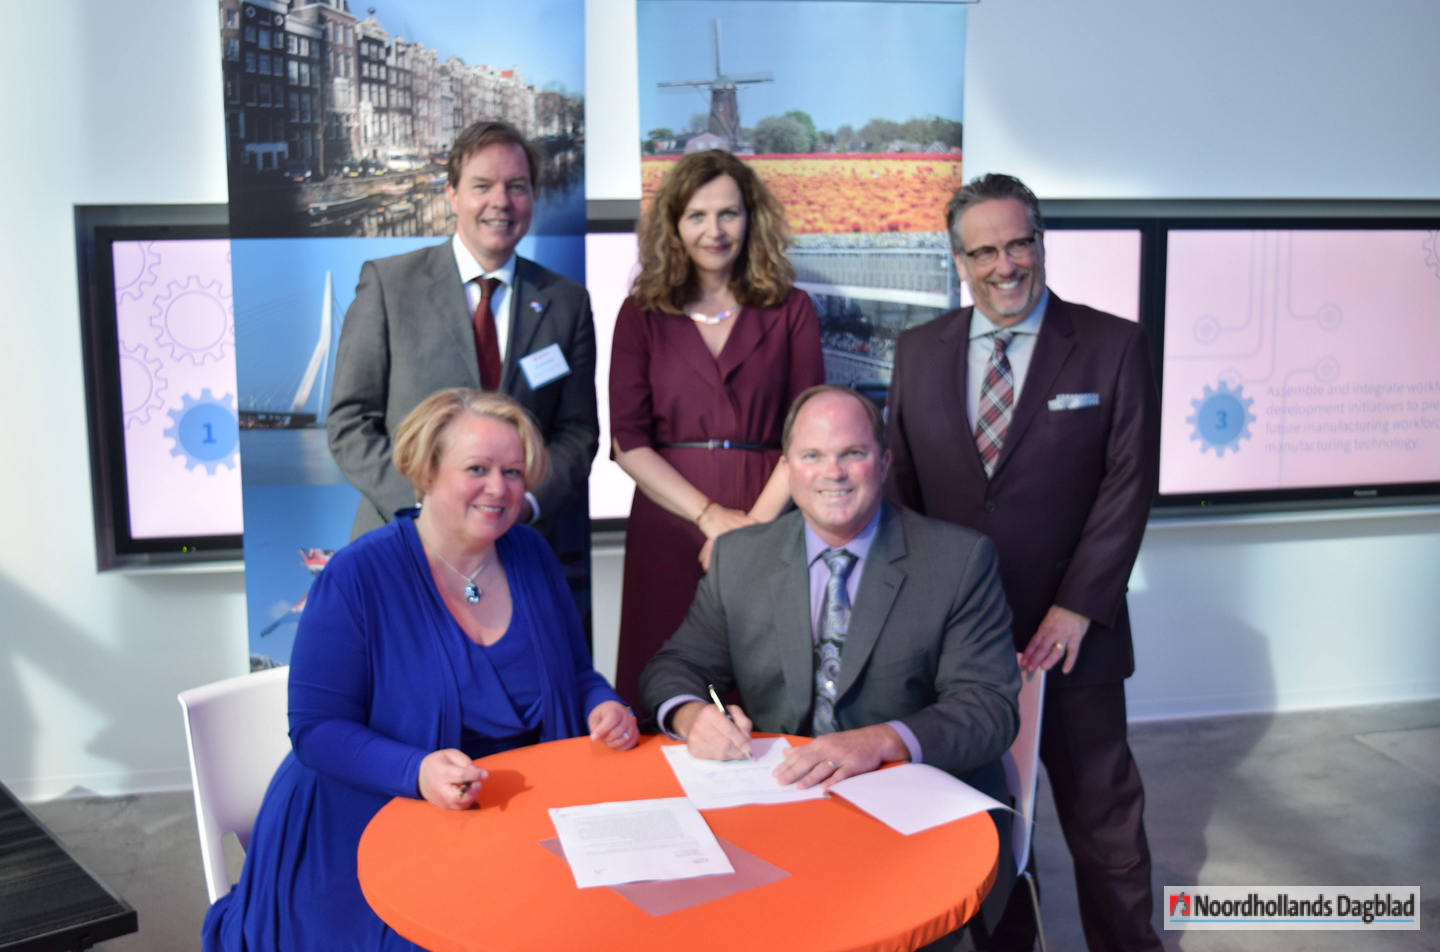 Royal Duyvis Wiener, kick-starts Log5 with first US deal